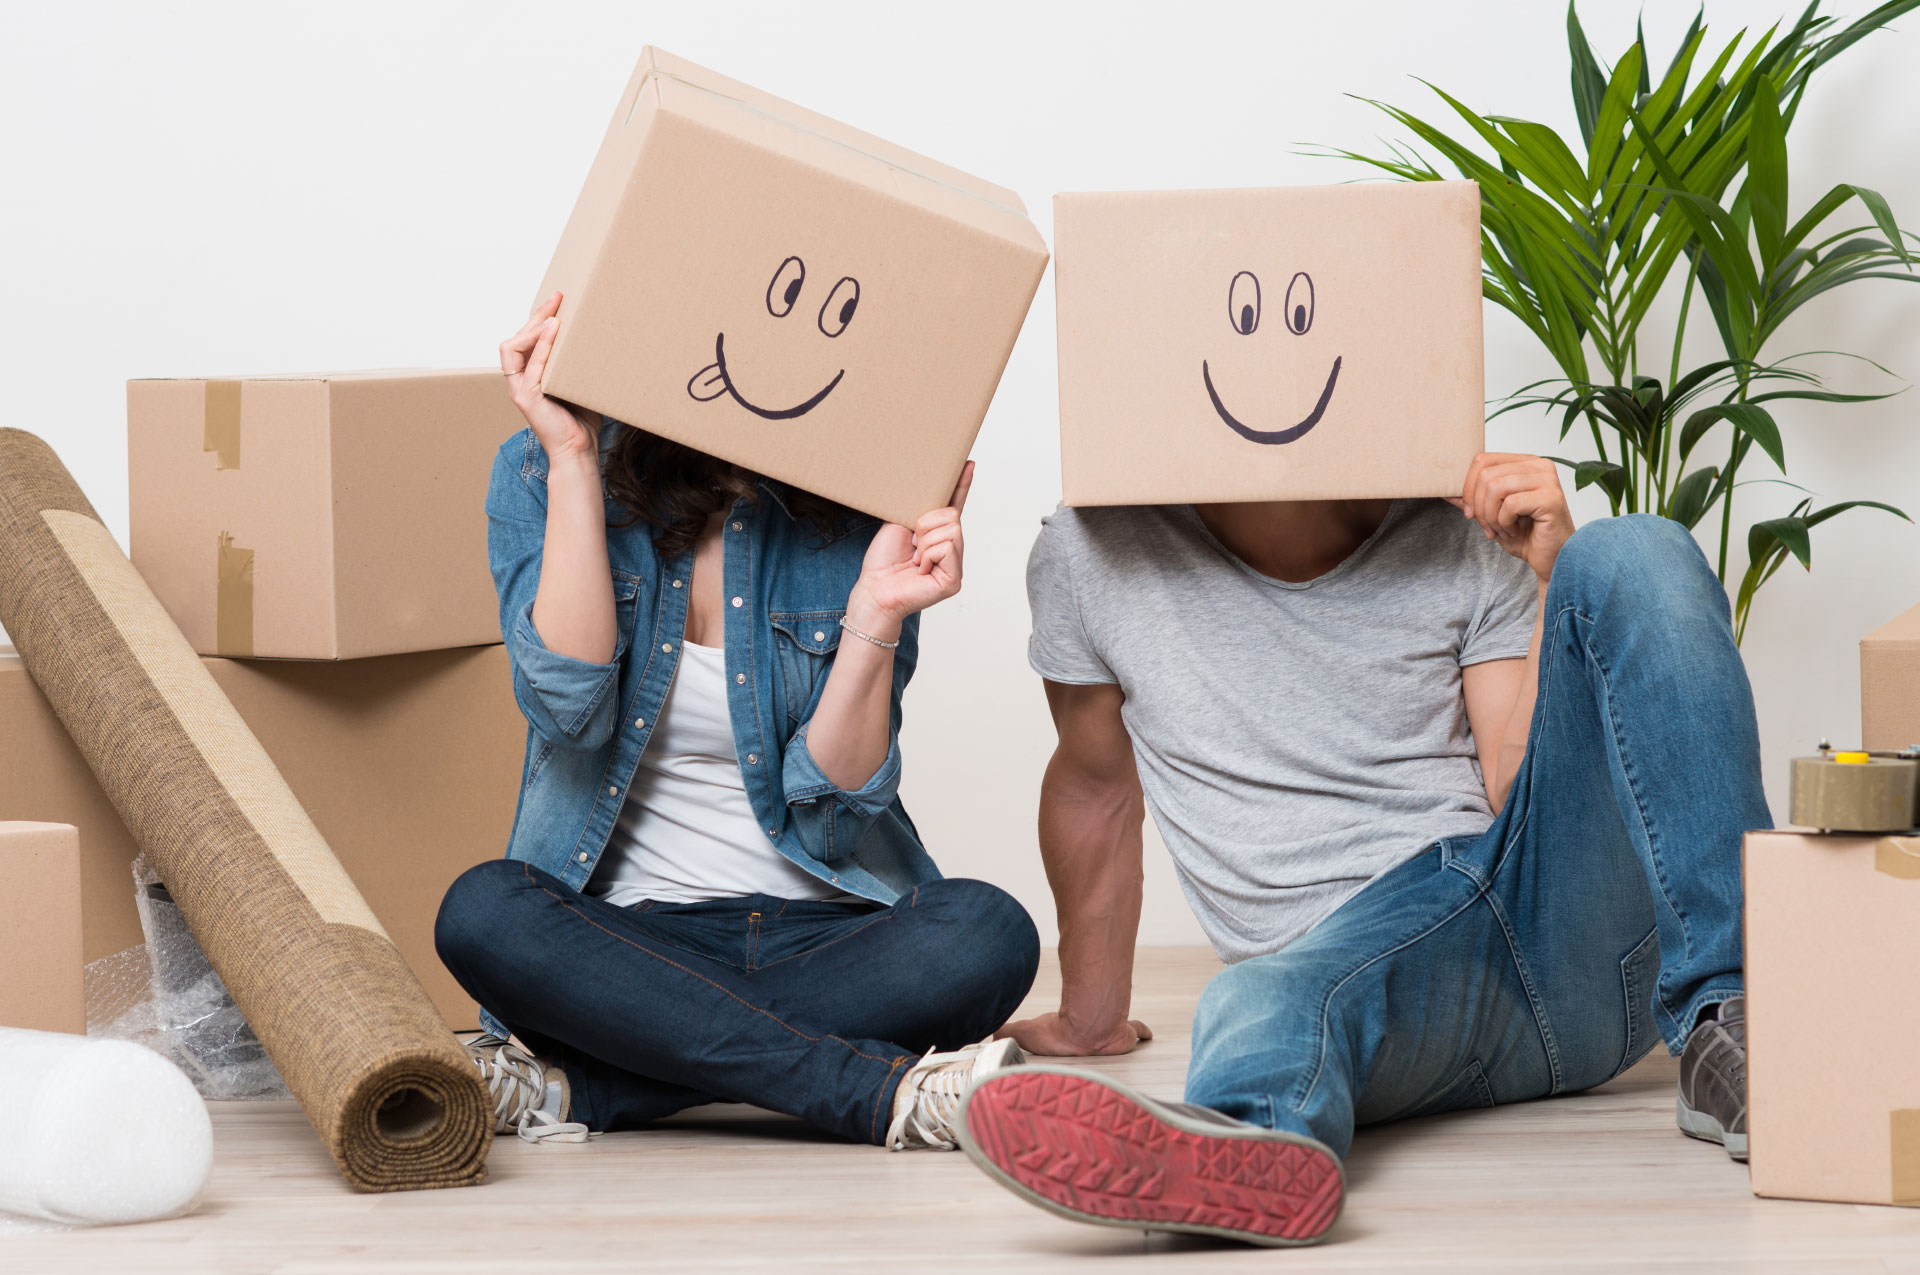 How to Pack Your Items When Moving House